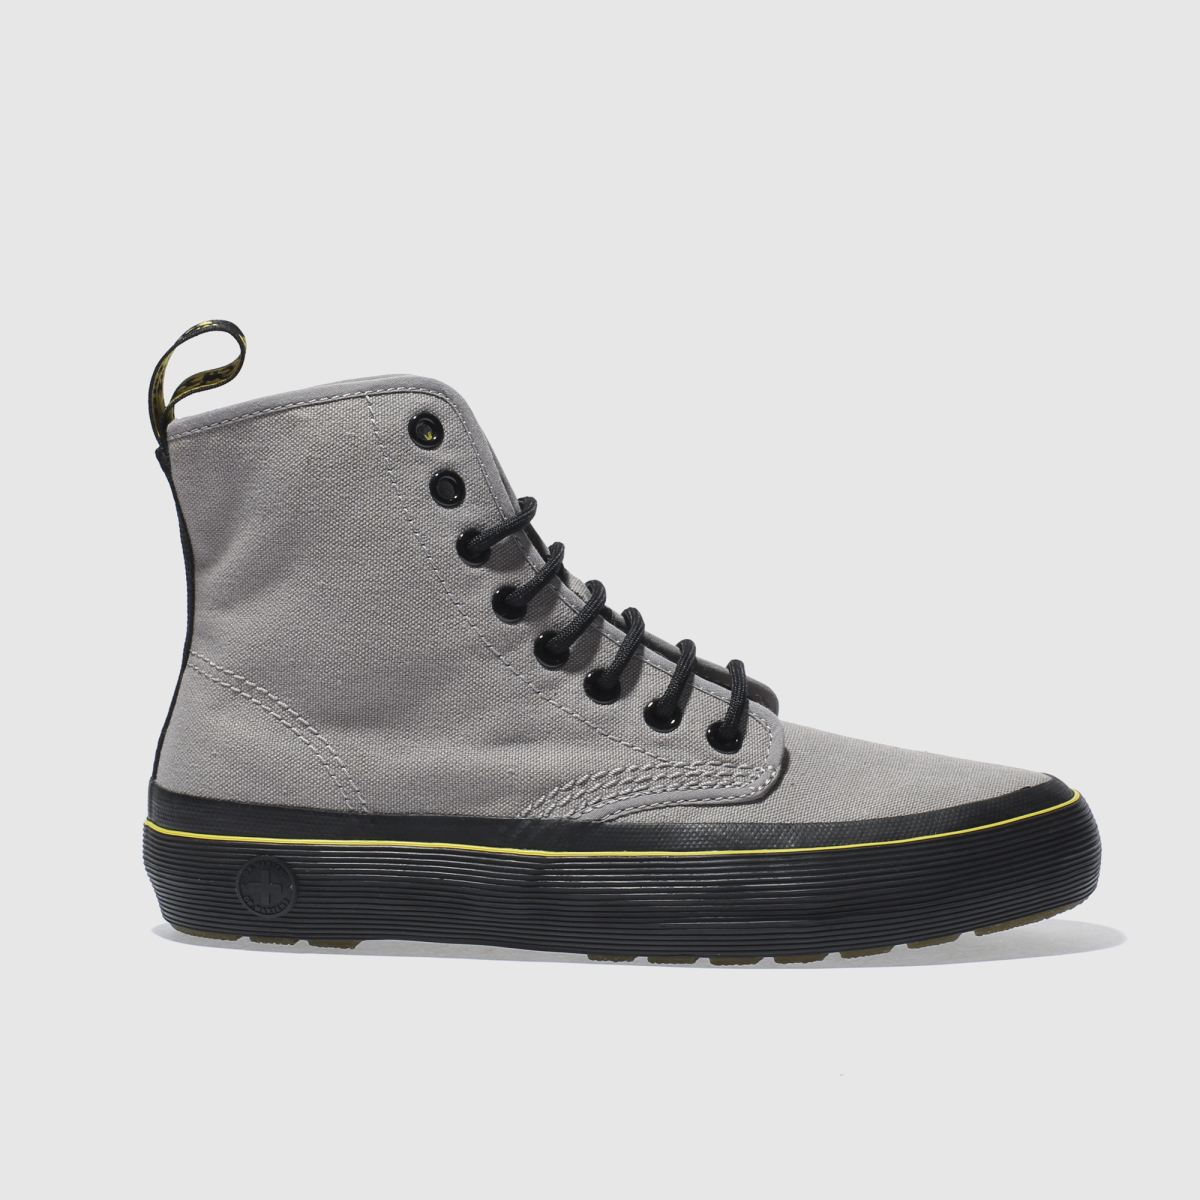 dr martens grey monet 8 eye boots